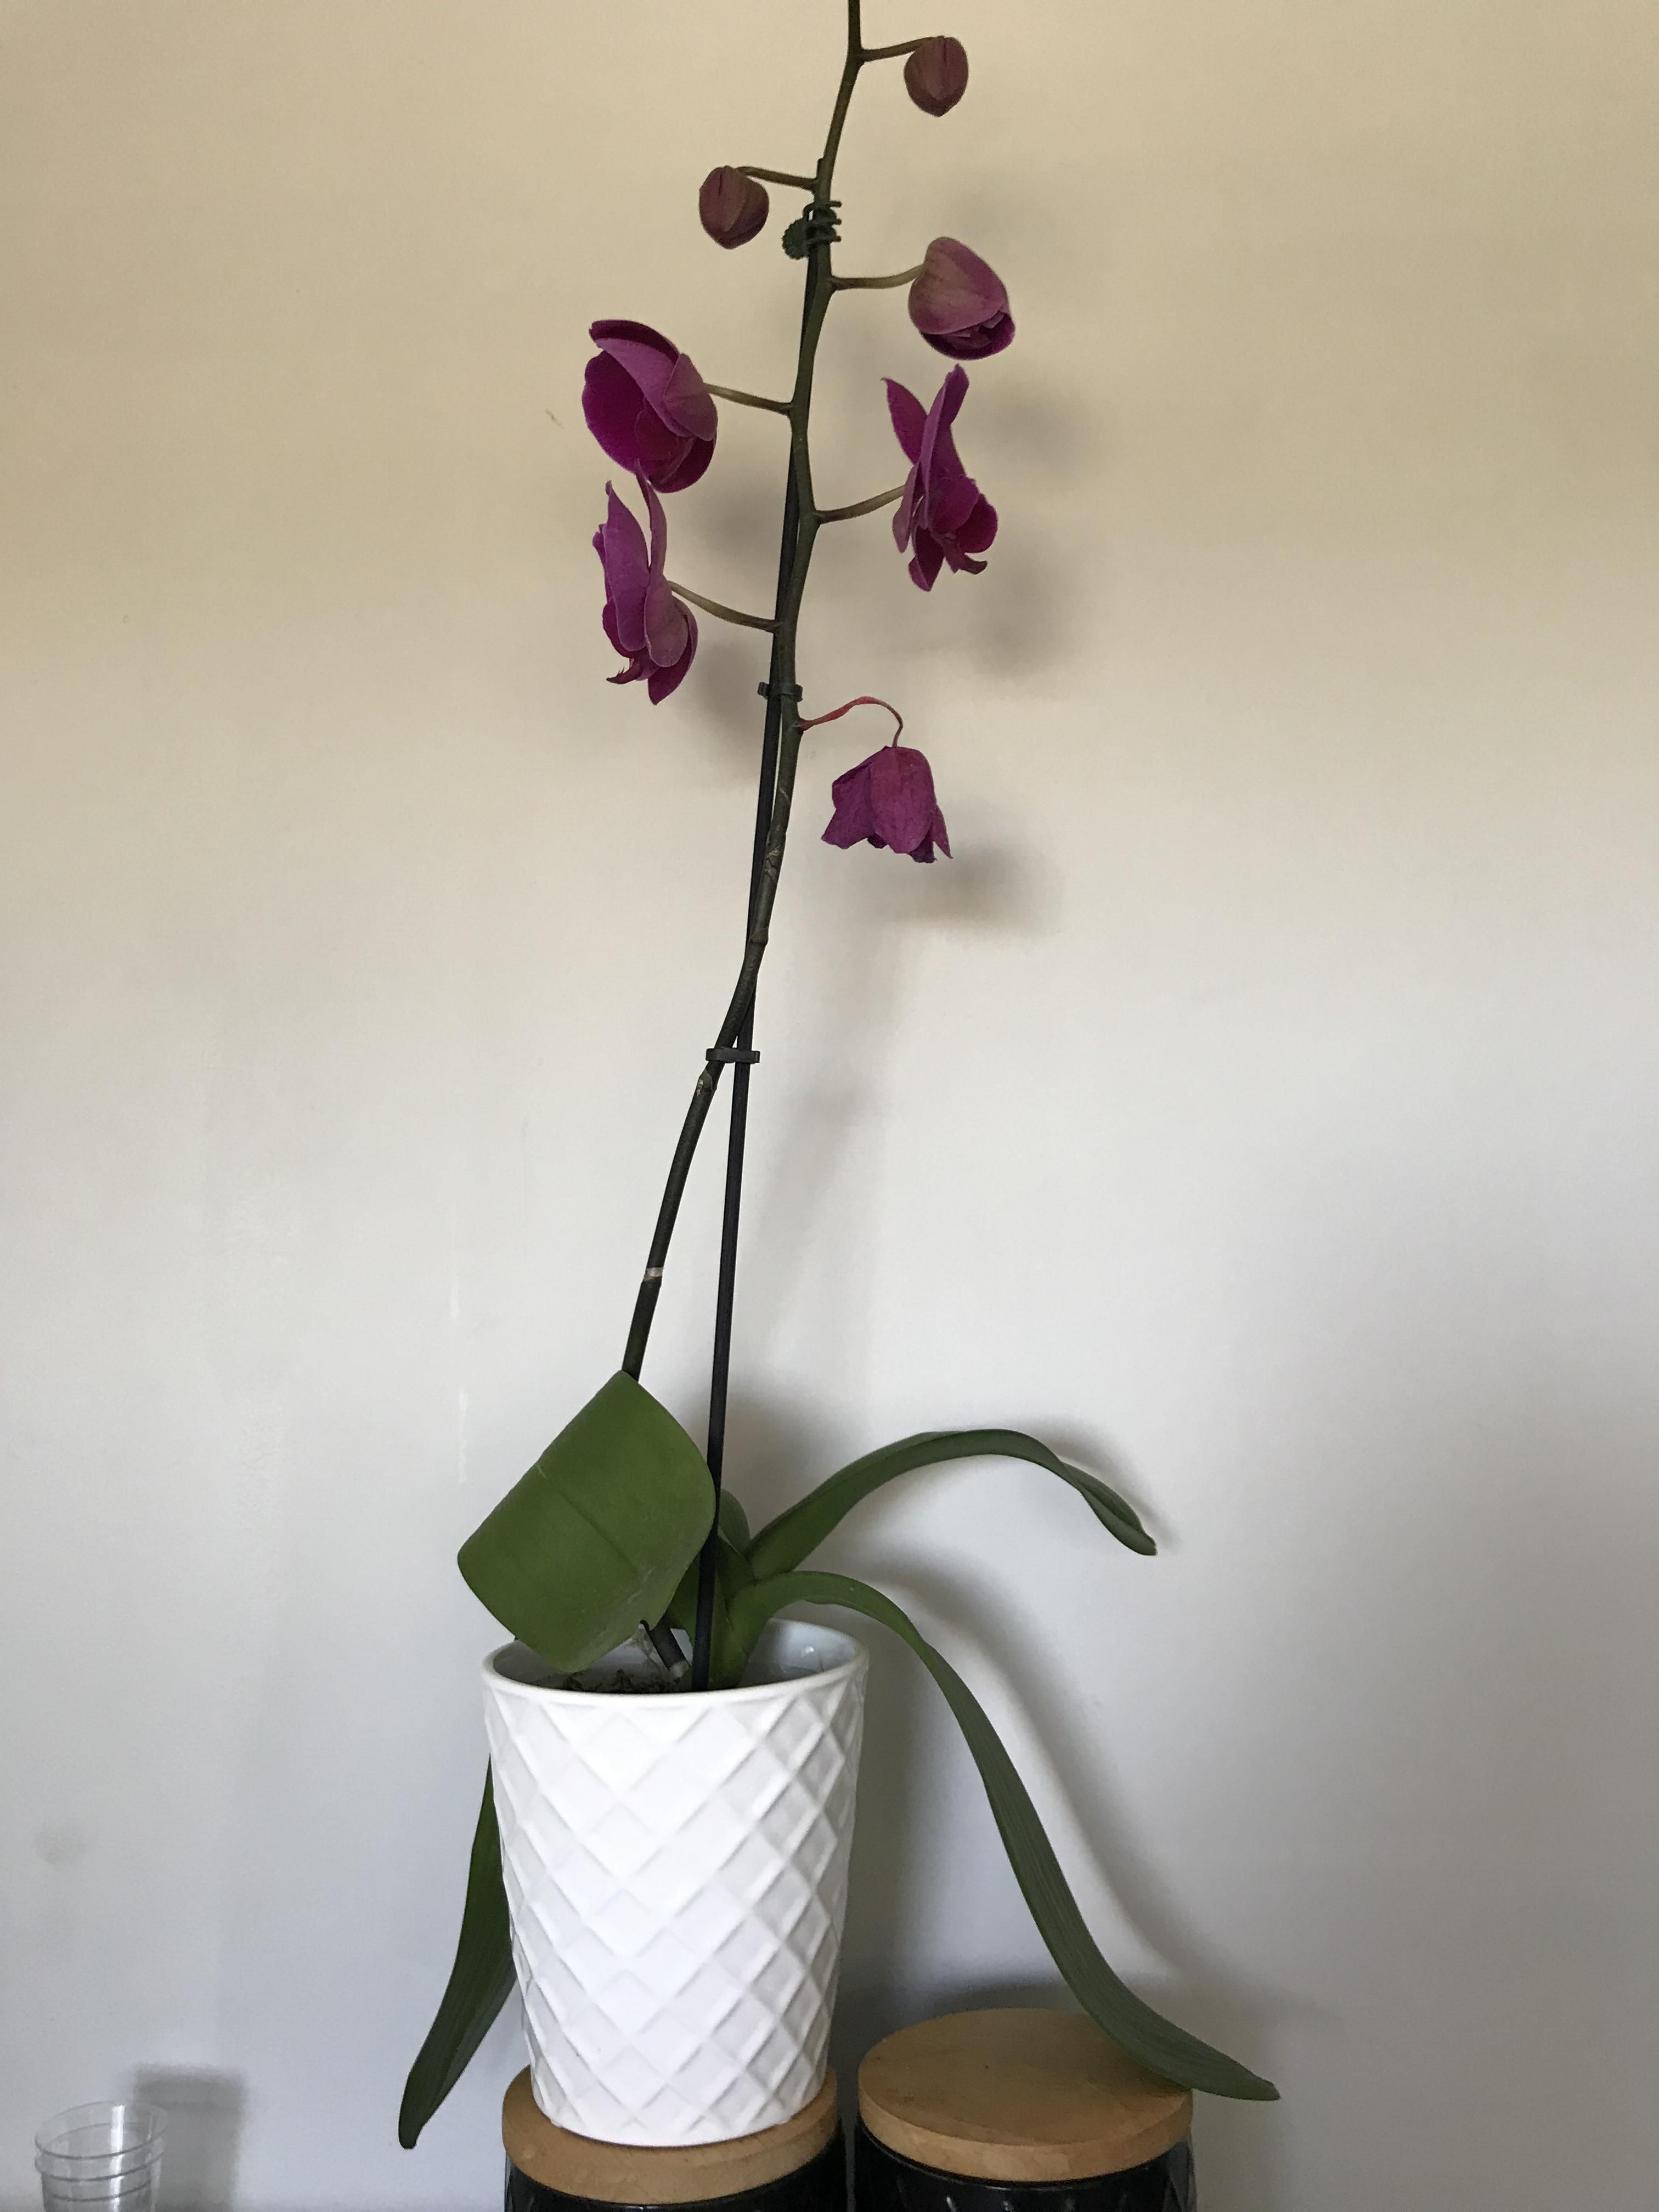 Is It Normal For An Orchids Leaves To Be So Droopy And One Of The Flowers Are Starting To Droop Too Anyone Know The Cause Orchid Leaves Orchids Orchid Plants